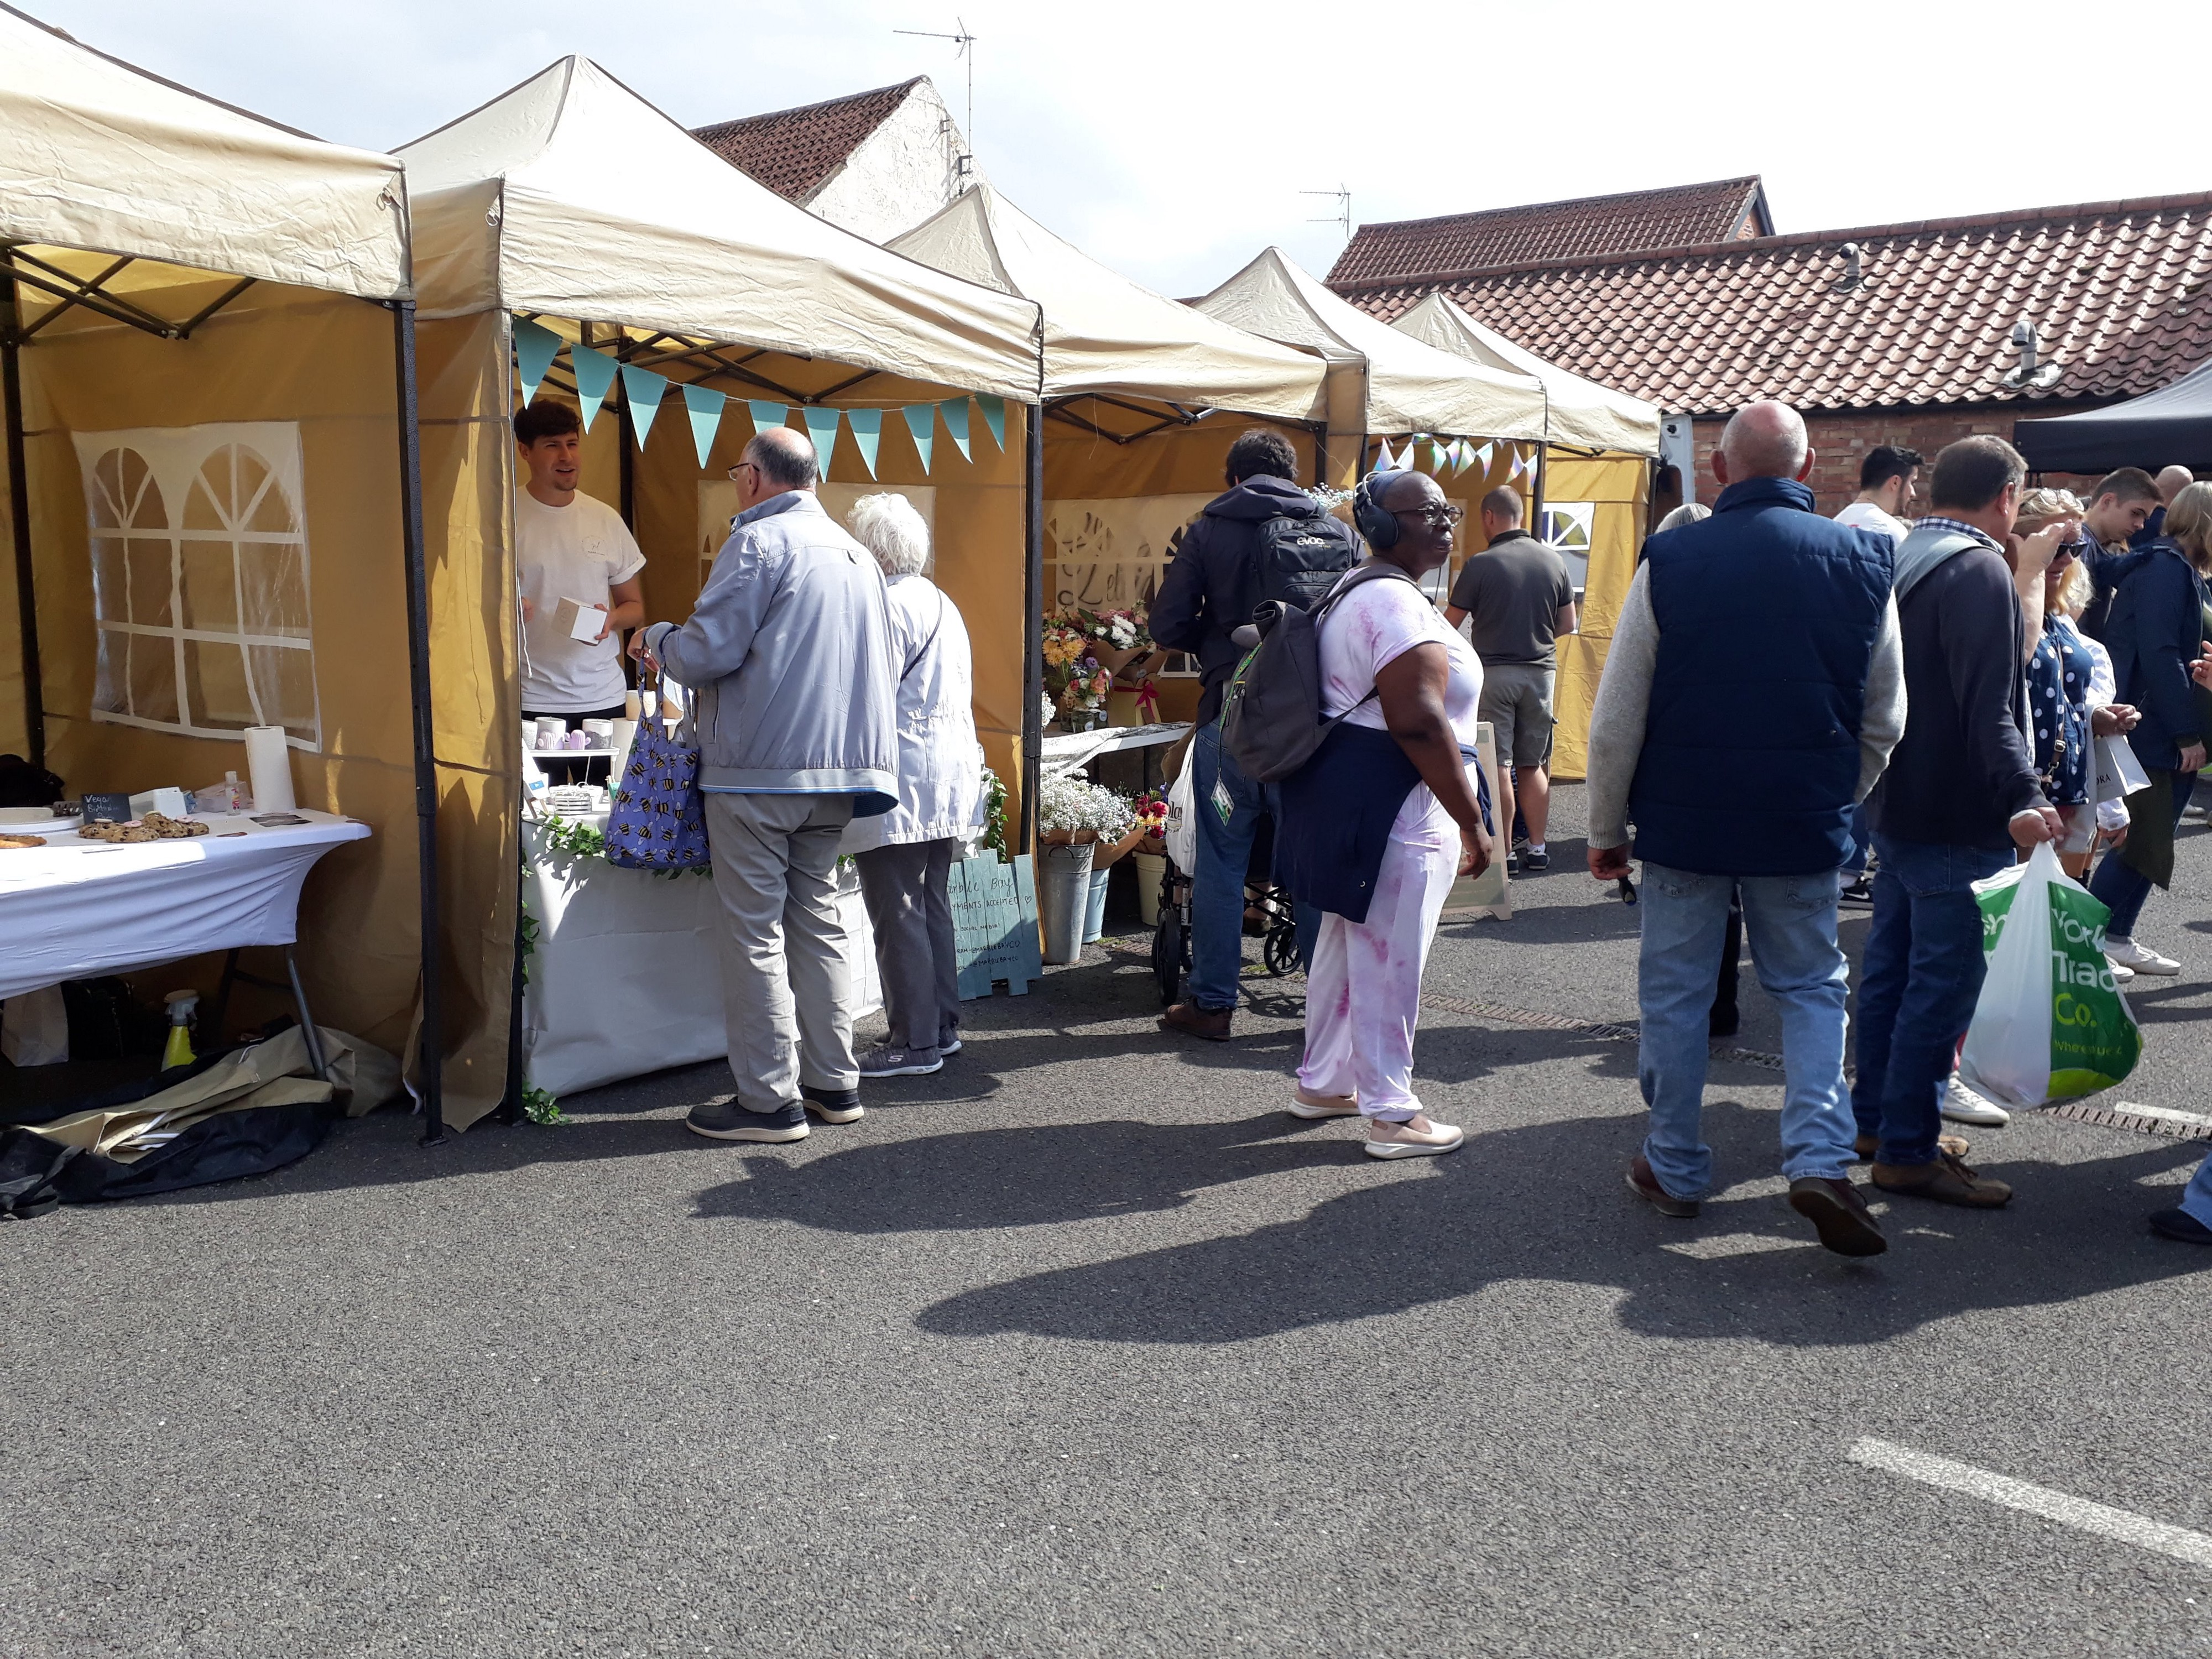 Millstream Square Street Food and Artisan Market in Sleaford